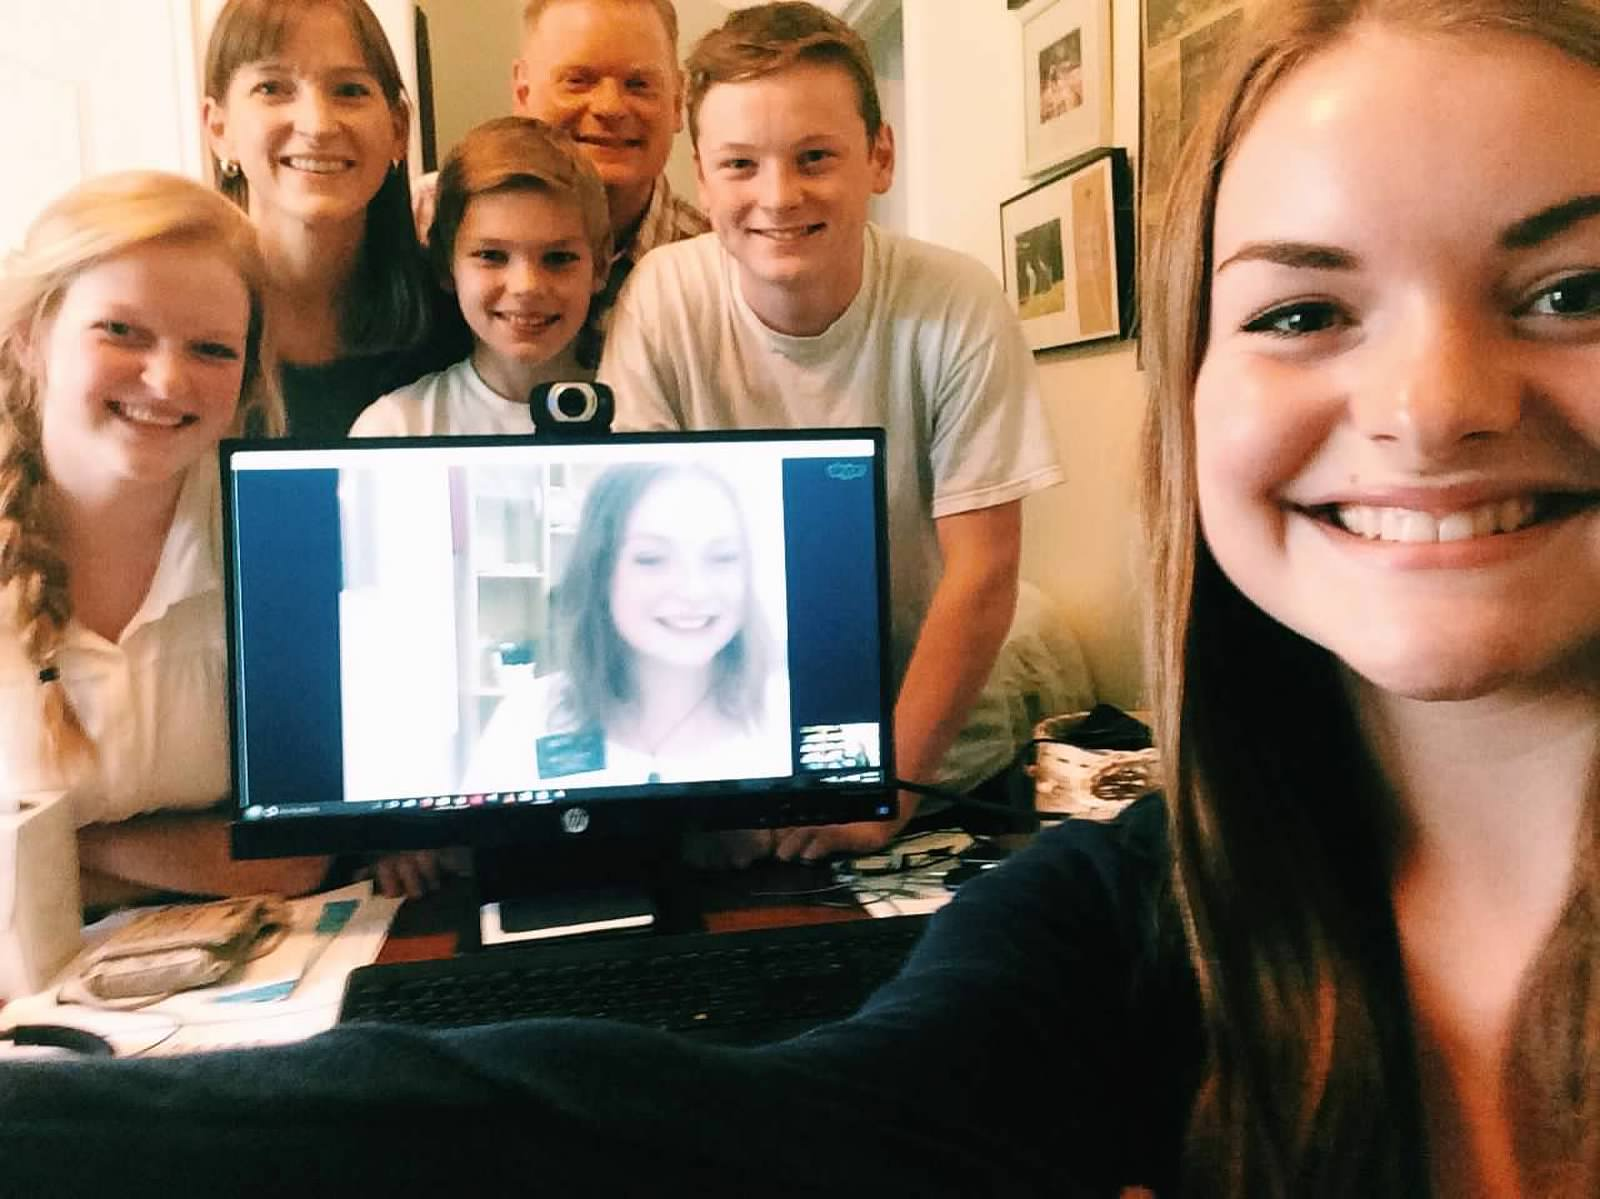 Video_chat_with_family